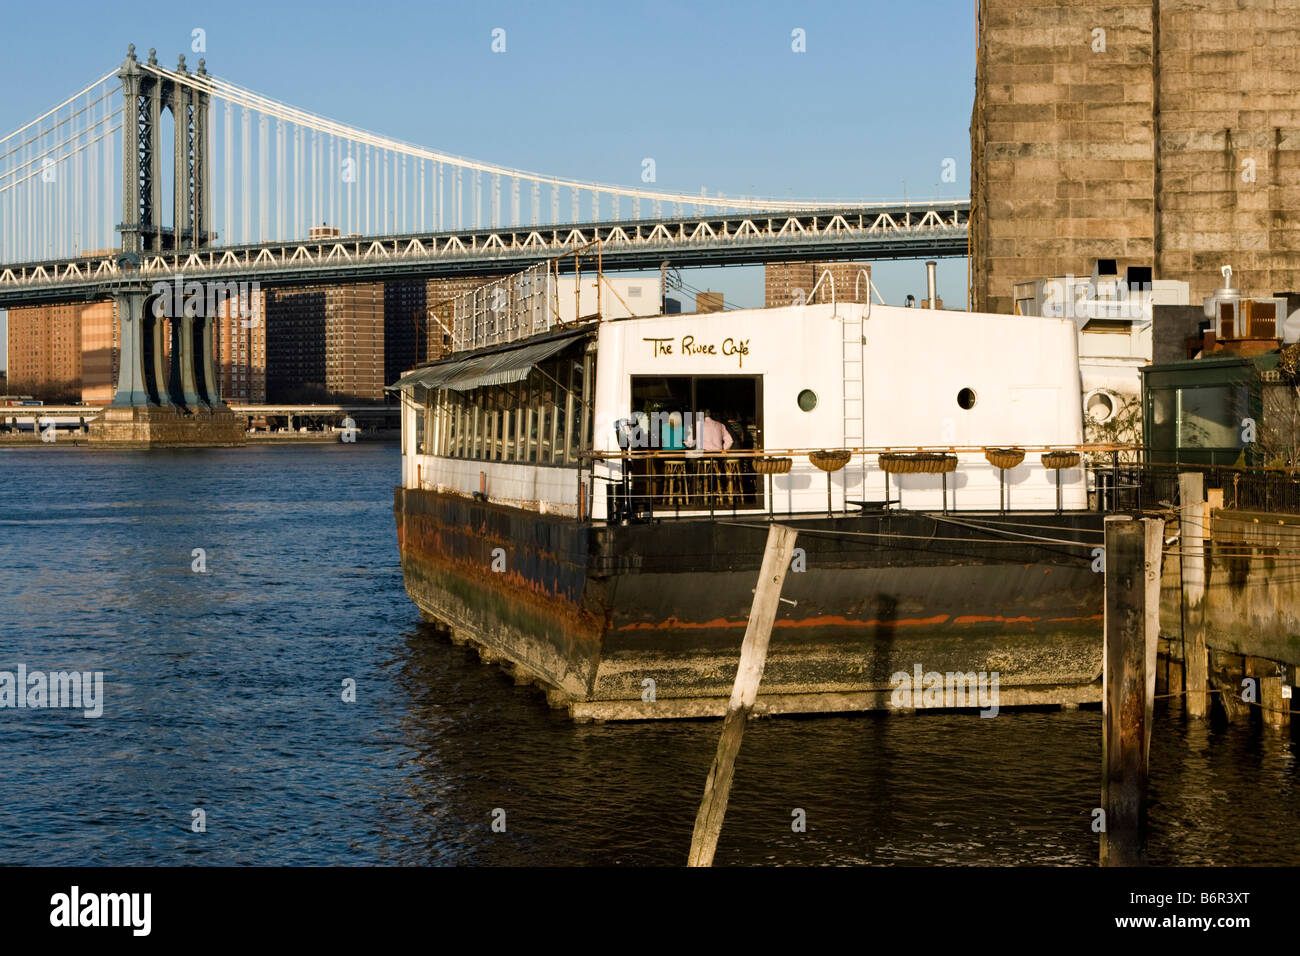 The River Cafe restaurant is seen in front of the Brooklyn ...